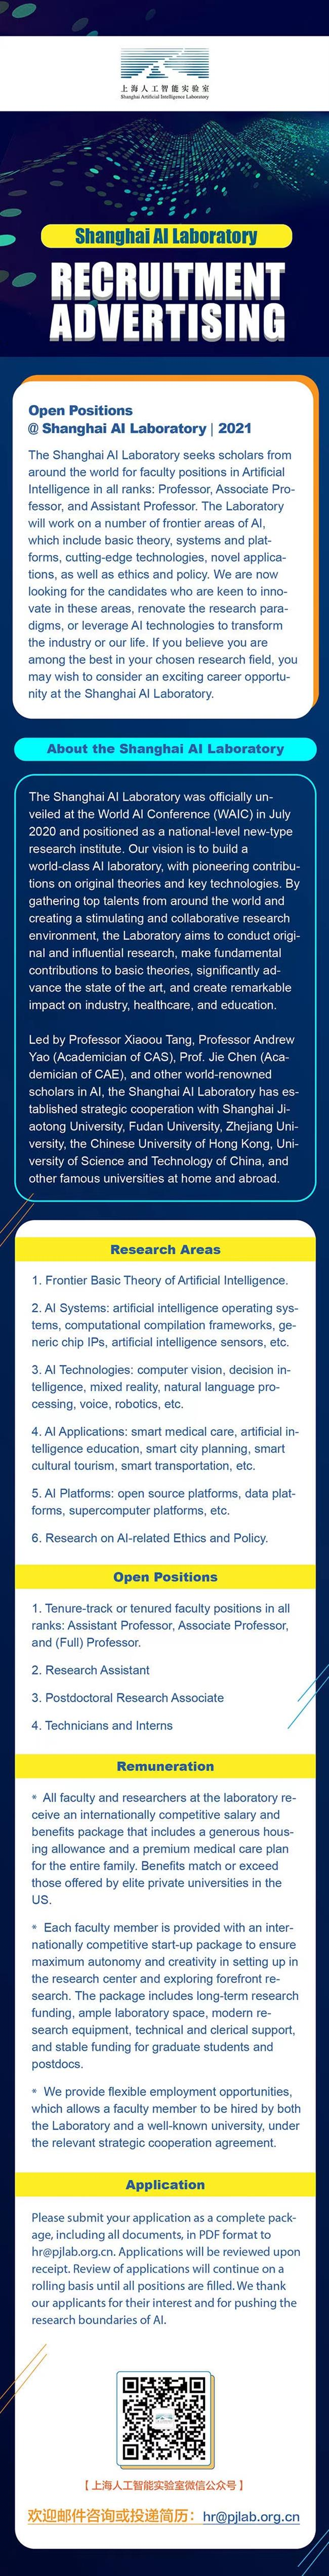 Shanghai AI Laboratory in global talent search